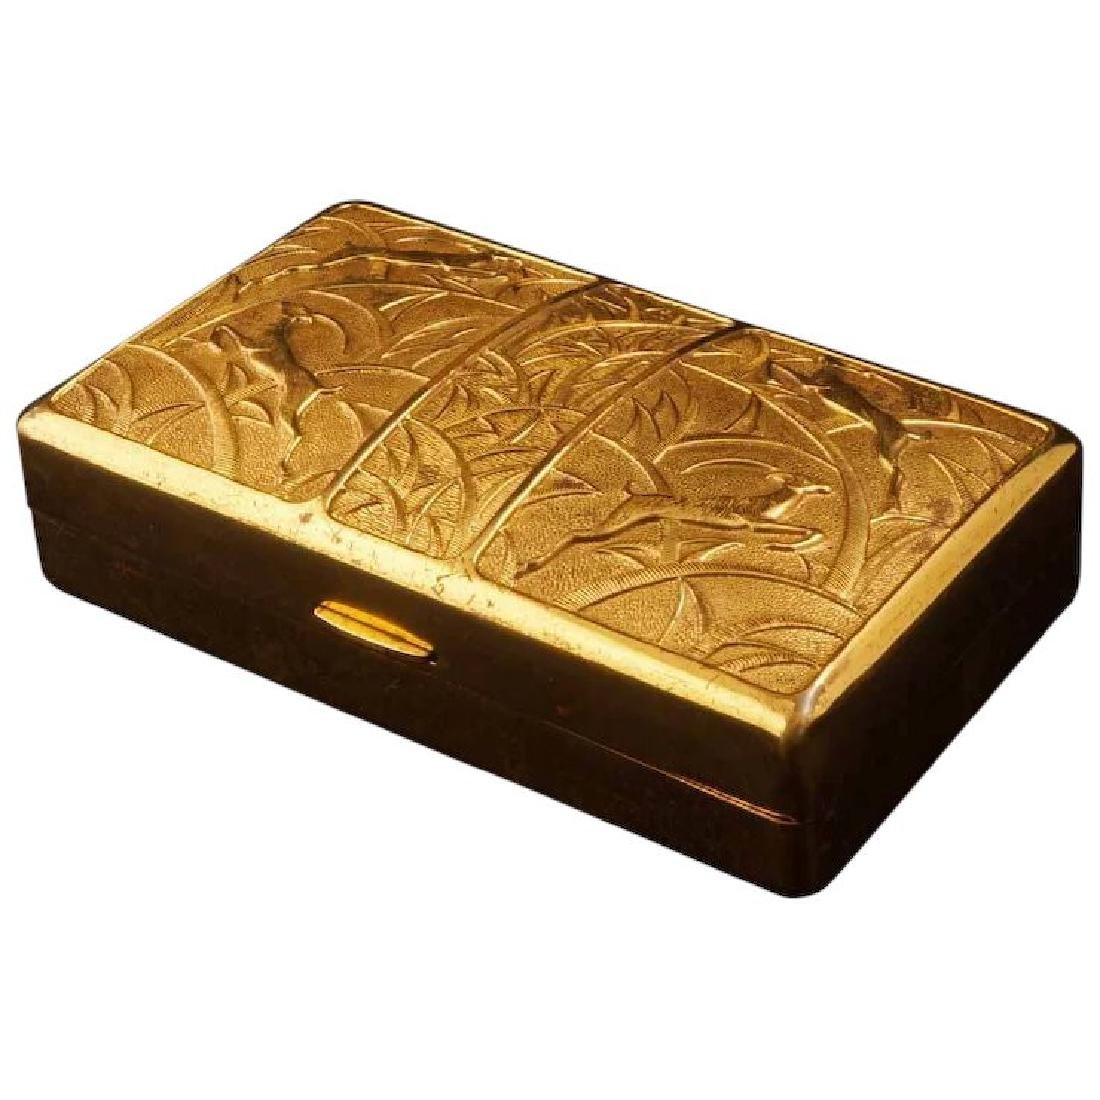 Elgin America art deco gilded Cosmetic Compact Carryall